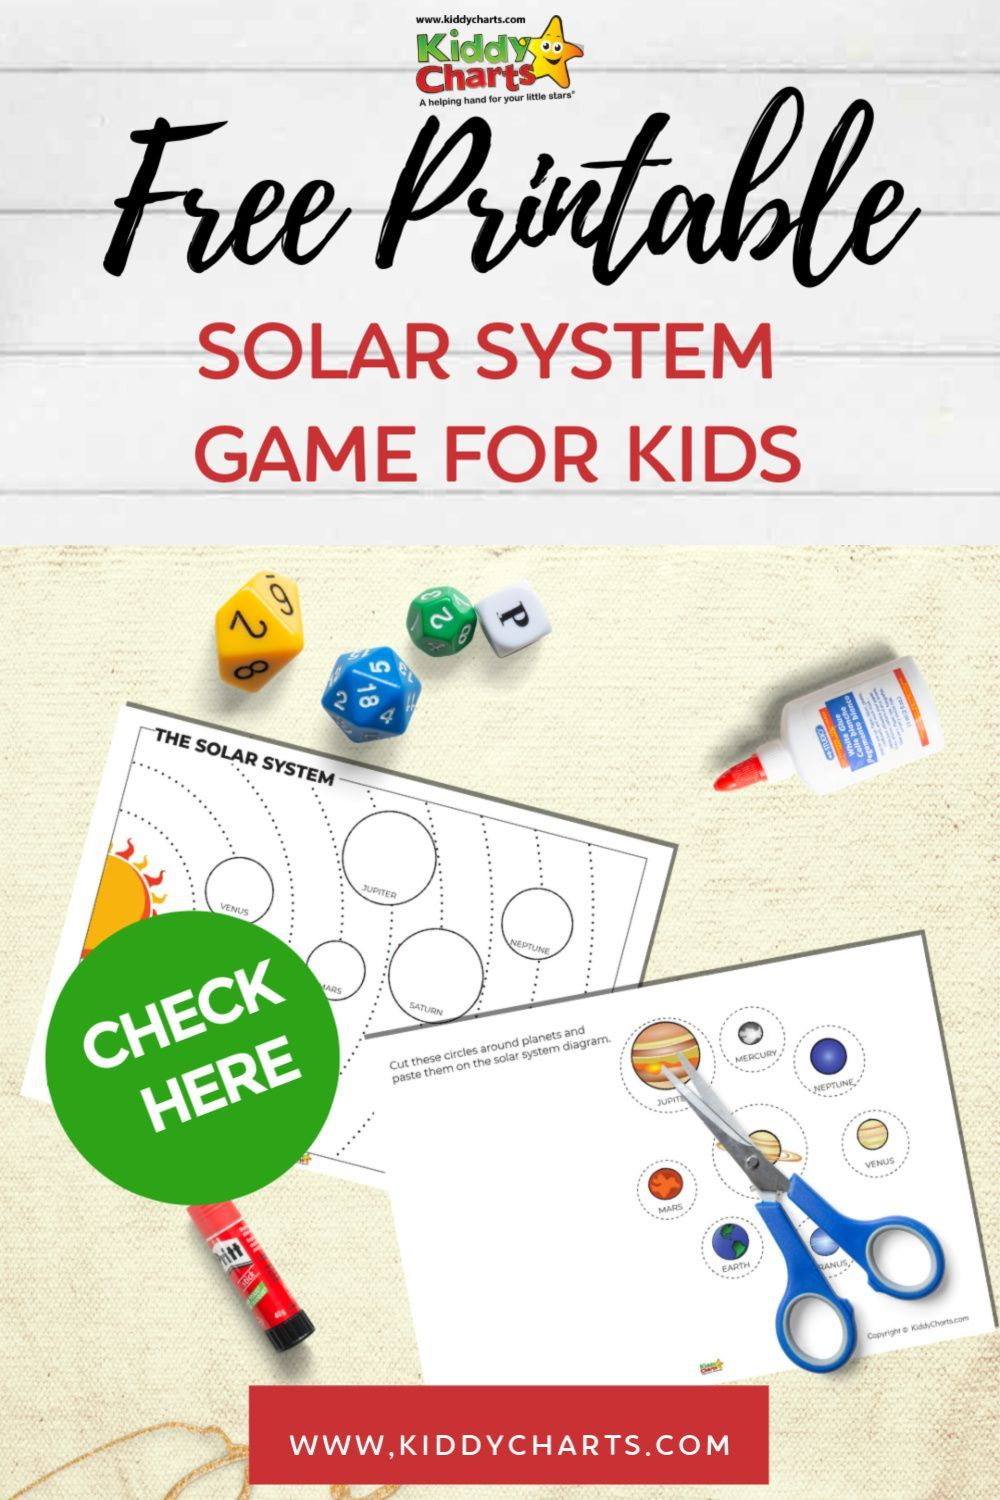 Solar System Game For Kids Free Printable Space Activities For Kids Science Projects For Kids Printable Activities For Kids [ 1500 x 1000 Pixel ]